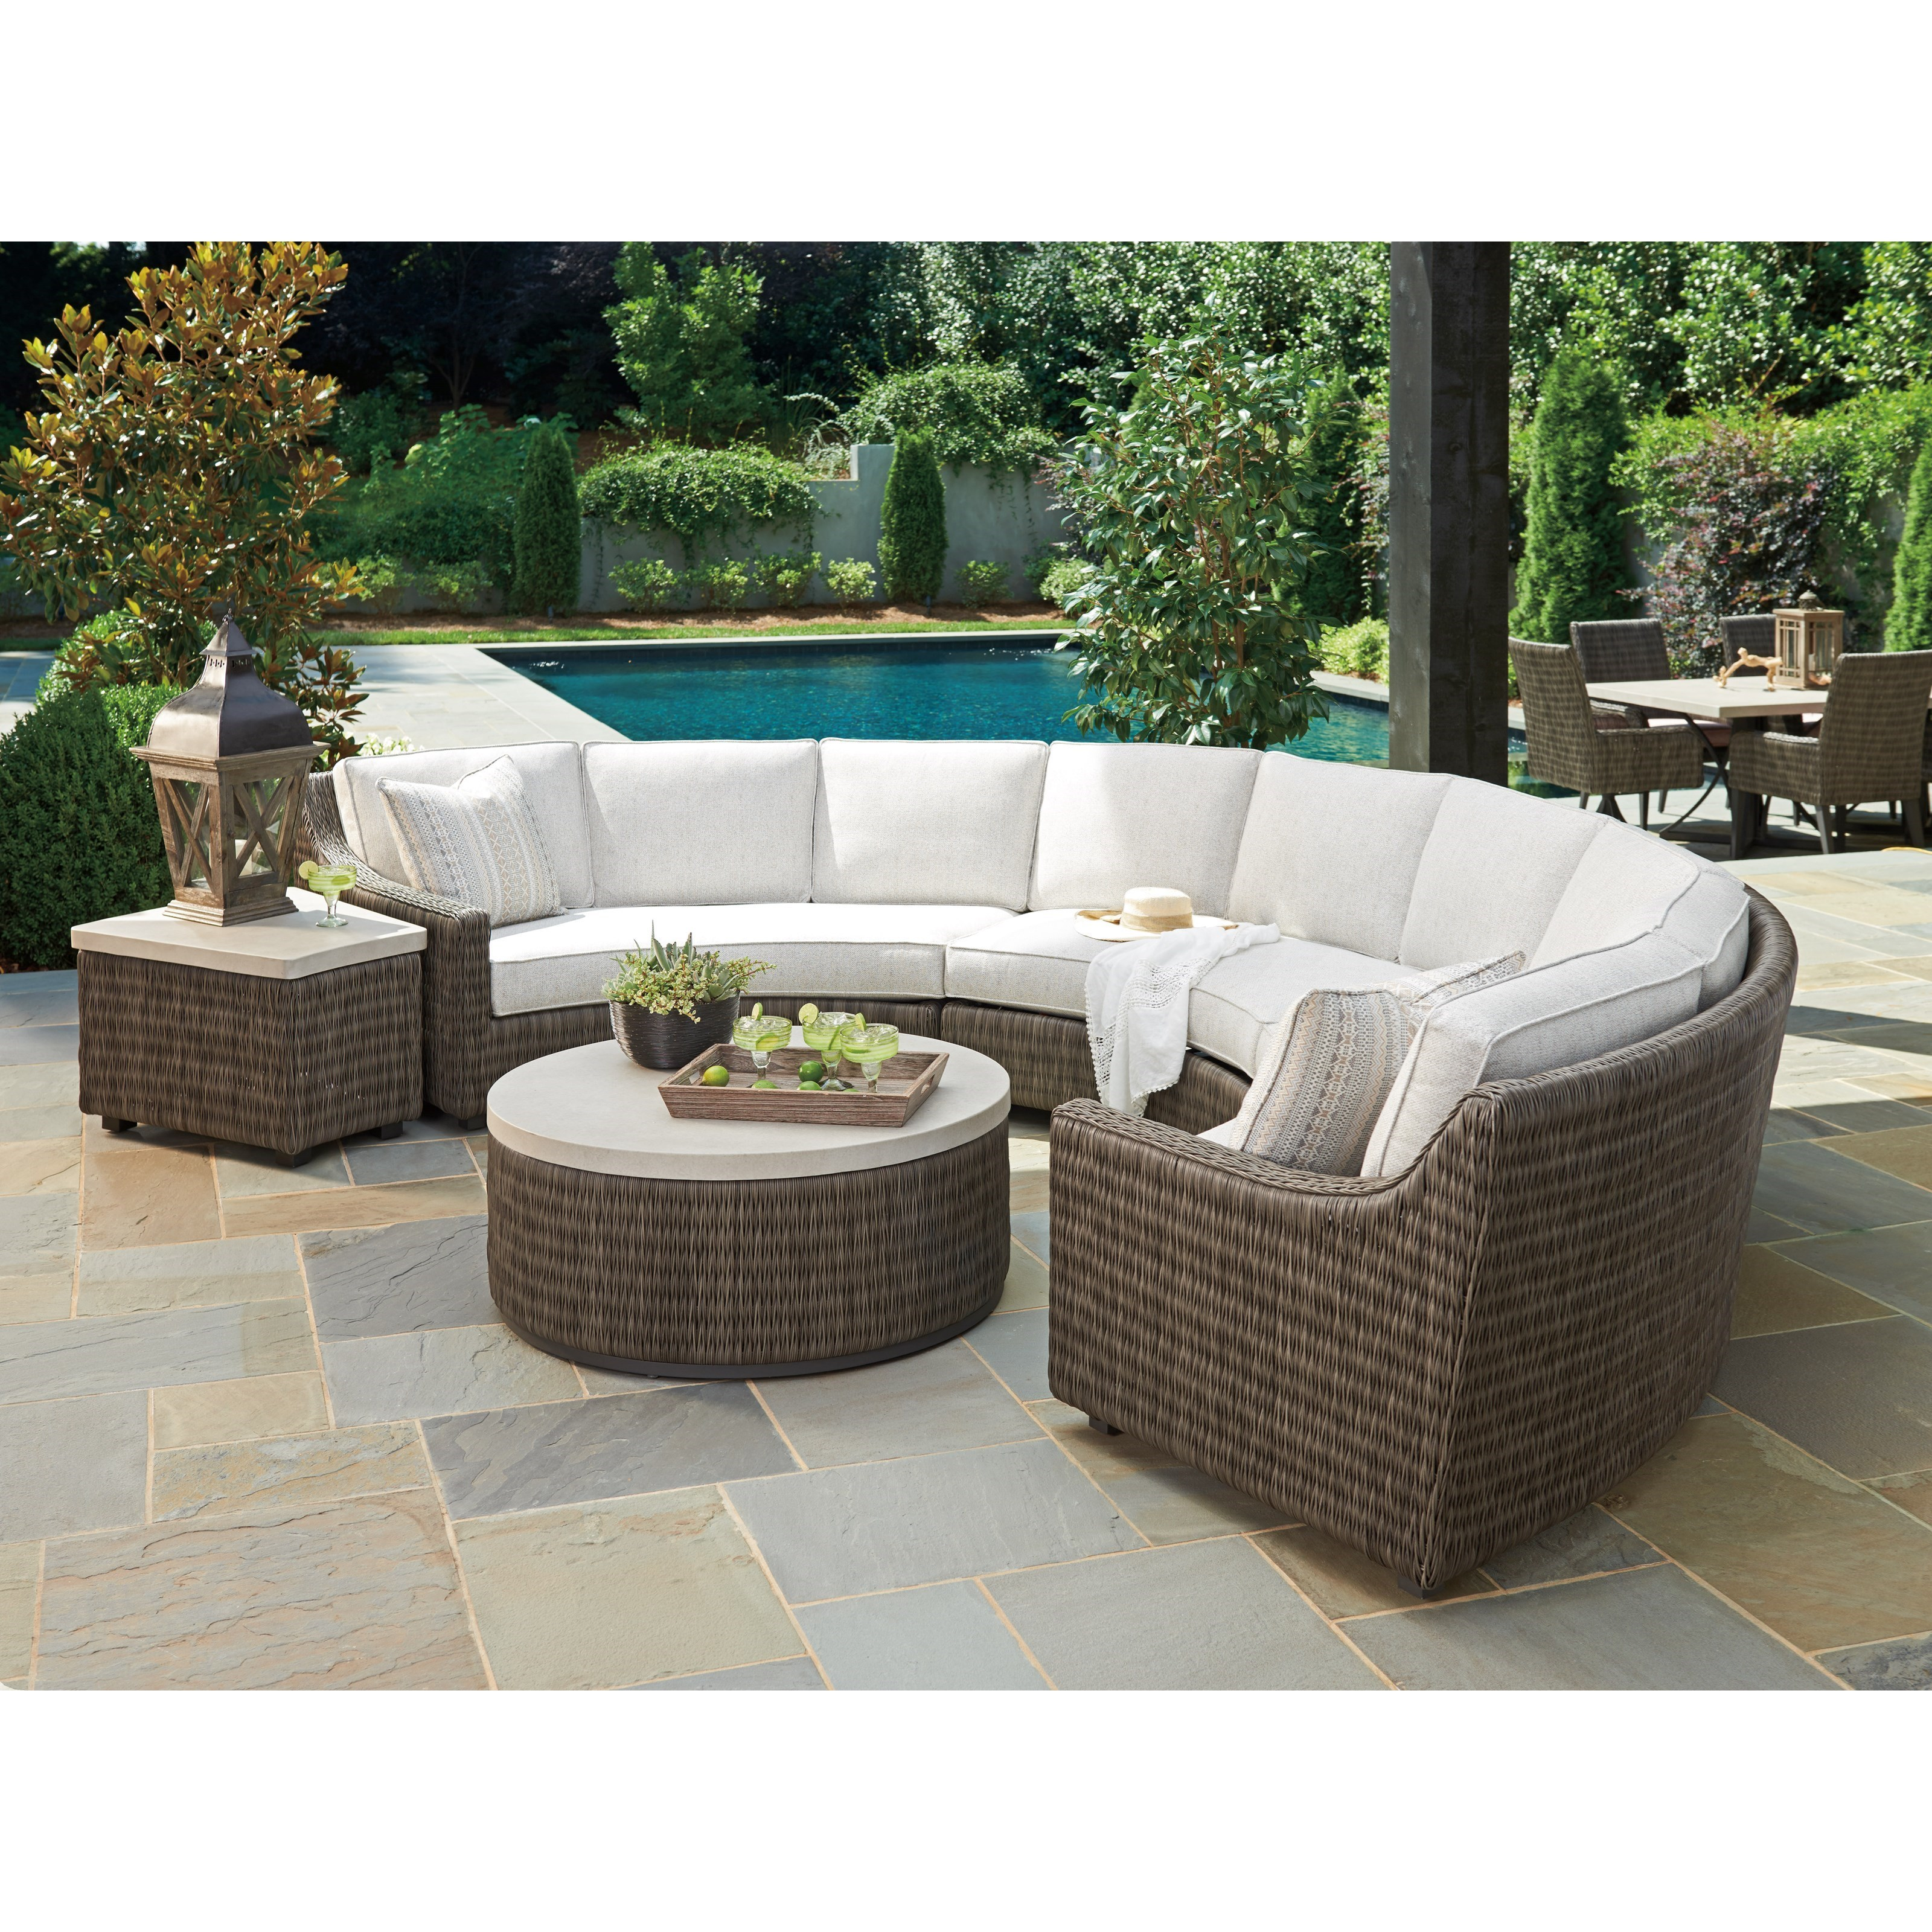 Cypress Point Ocean Terrace Outdoor Sectional Sofa Chat Set by Tommy Bahama Outdoor Living at Baer's Furniture